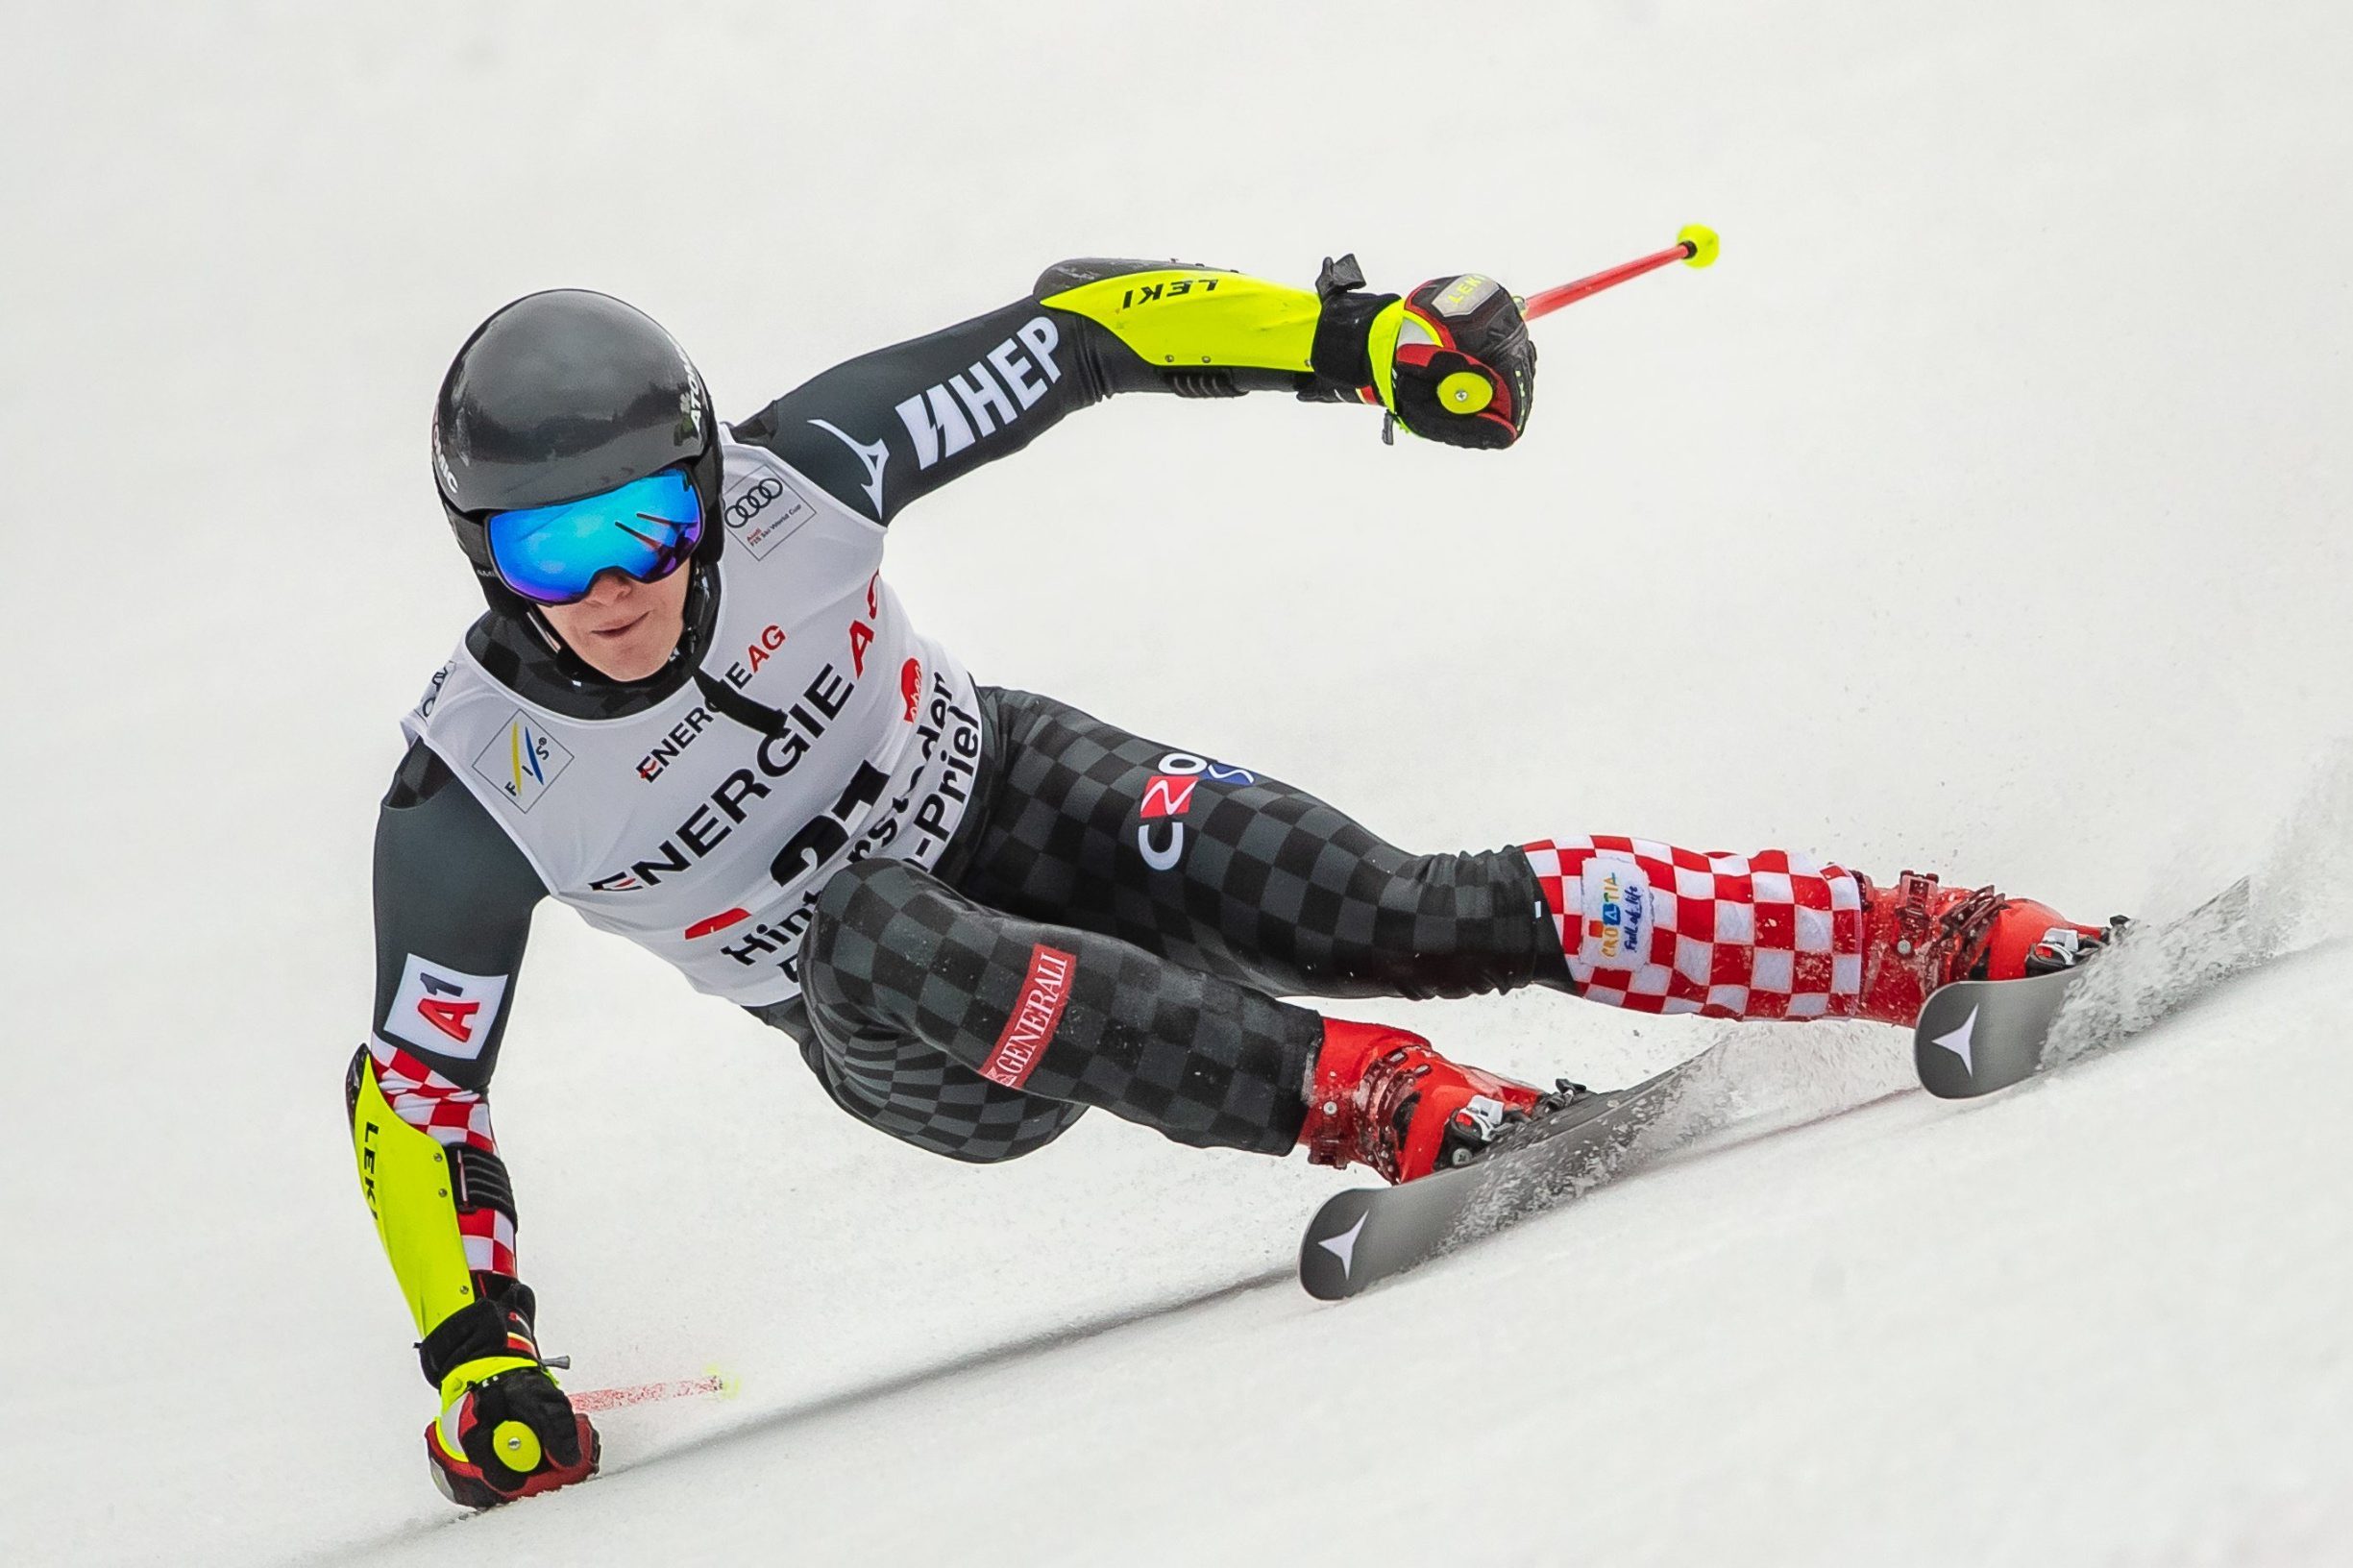 Filip Zubcic of Croatia competes in the Men's Super-G run of the Alpine Combined event at the FIS ski alpine World Cup on March 1, 2020 in Hinterstoder, Austria. (Photo by Johann GRODER / various sources / AFP) / Austria OUT